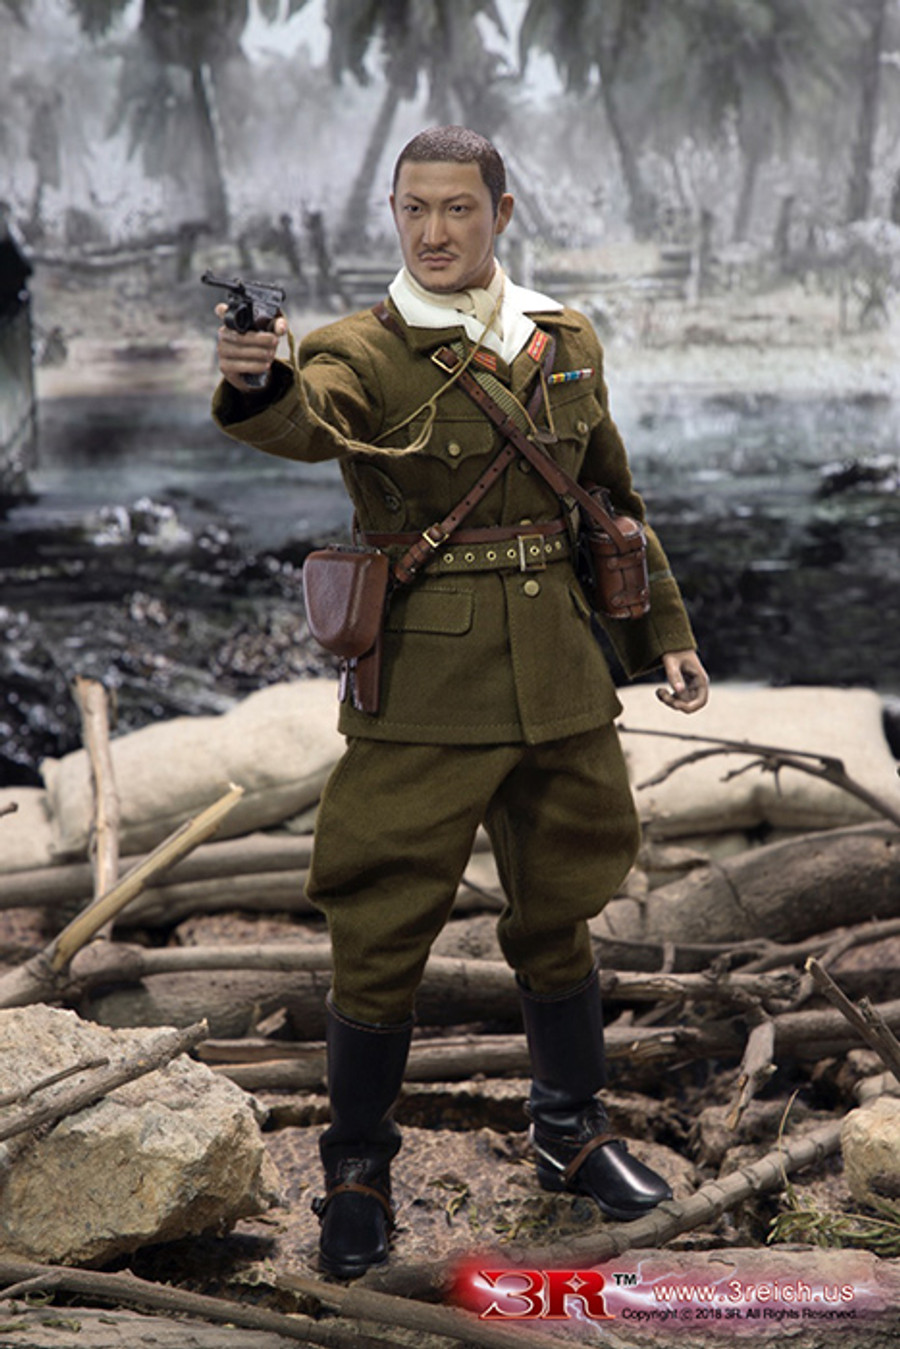 DID - IJA 32nd Army 24th Division - First Lieutenant Sachio Eto